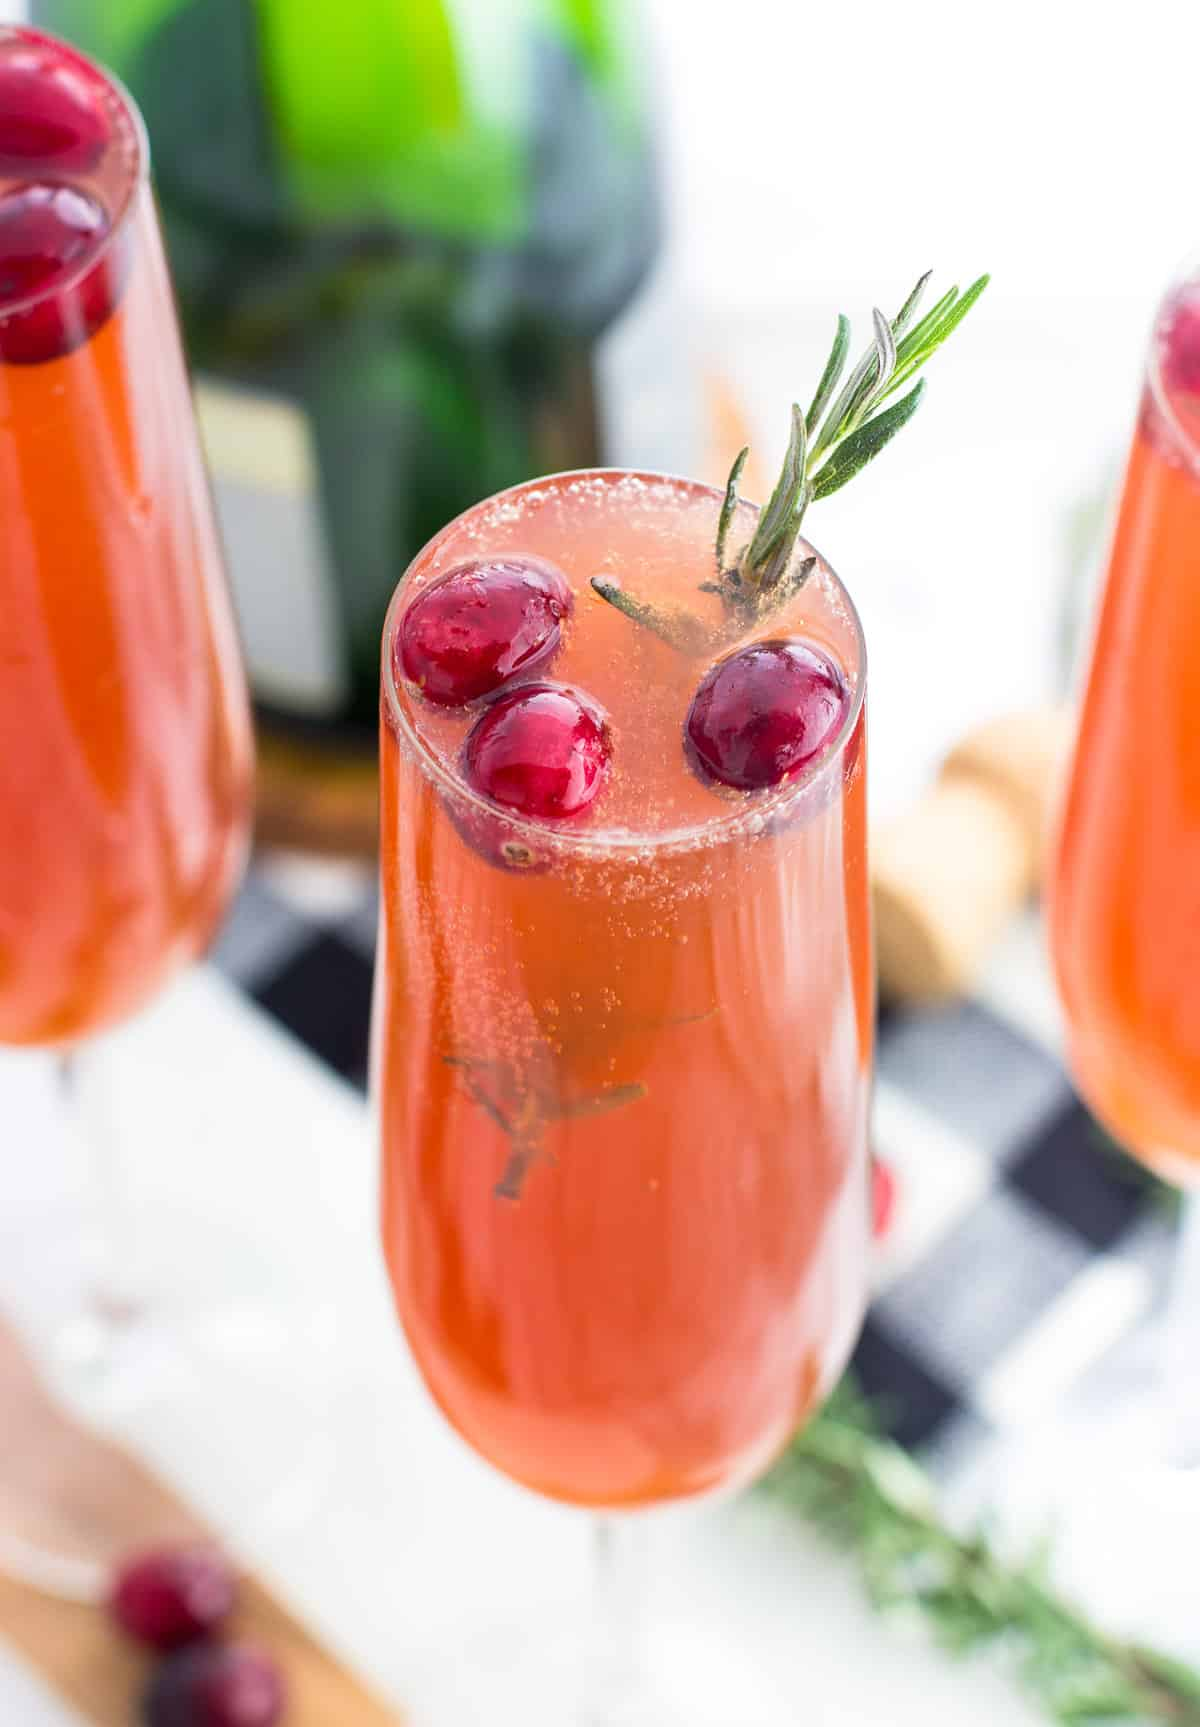 A close-up of a cranberry mimosa with three fresh cranberries and a sprig of rosemary for garnish